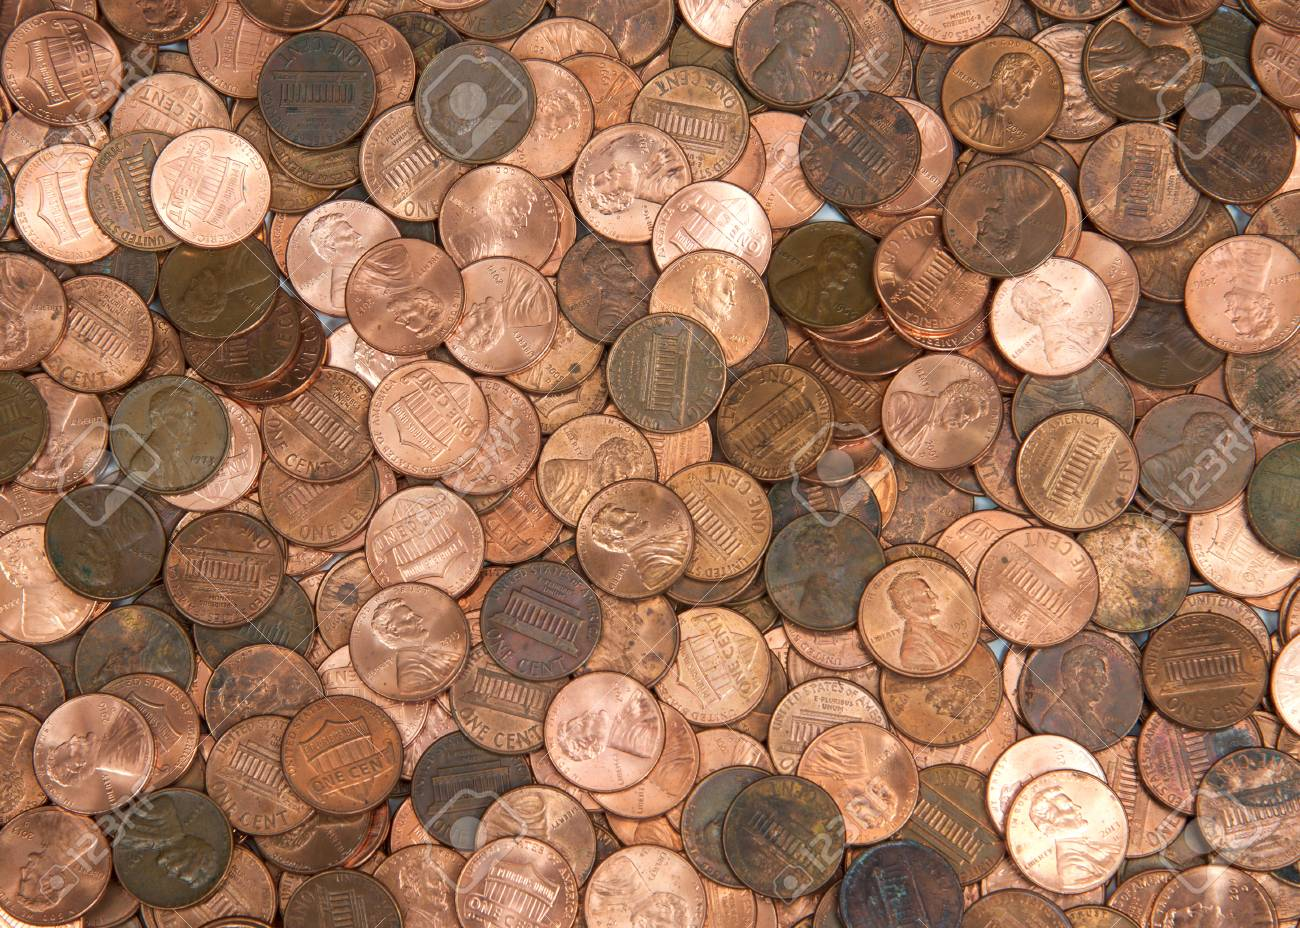 Flat view pennies  United States currency penny, many old new